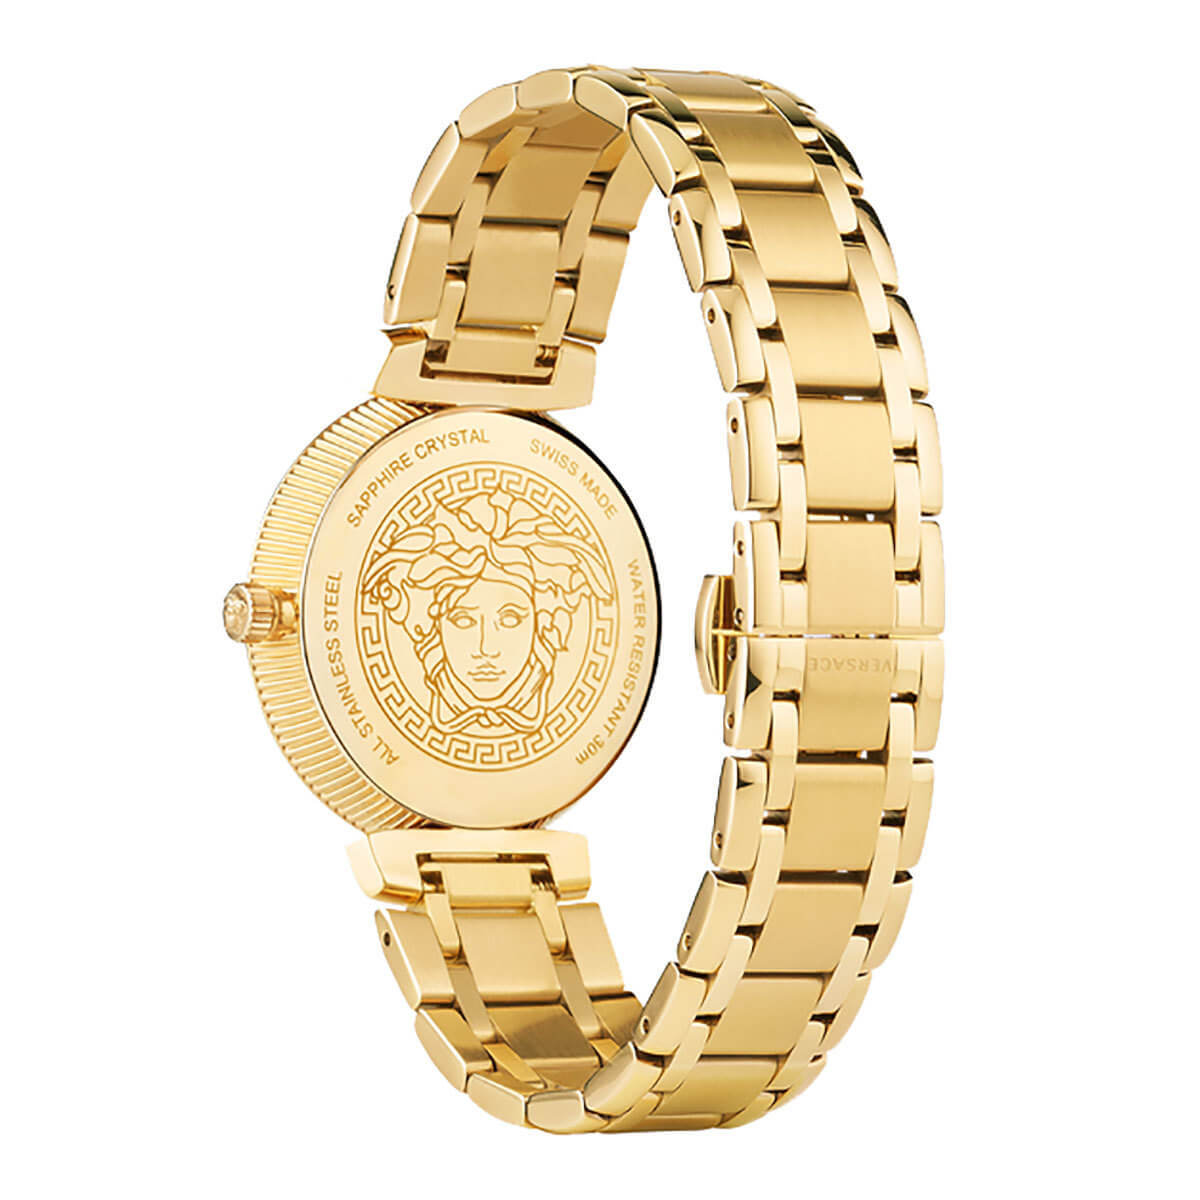 V1607-P0017_Daphnis_Watches_versace_2